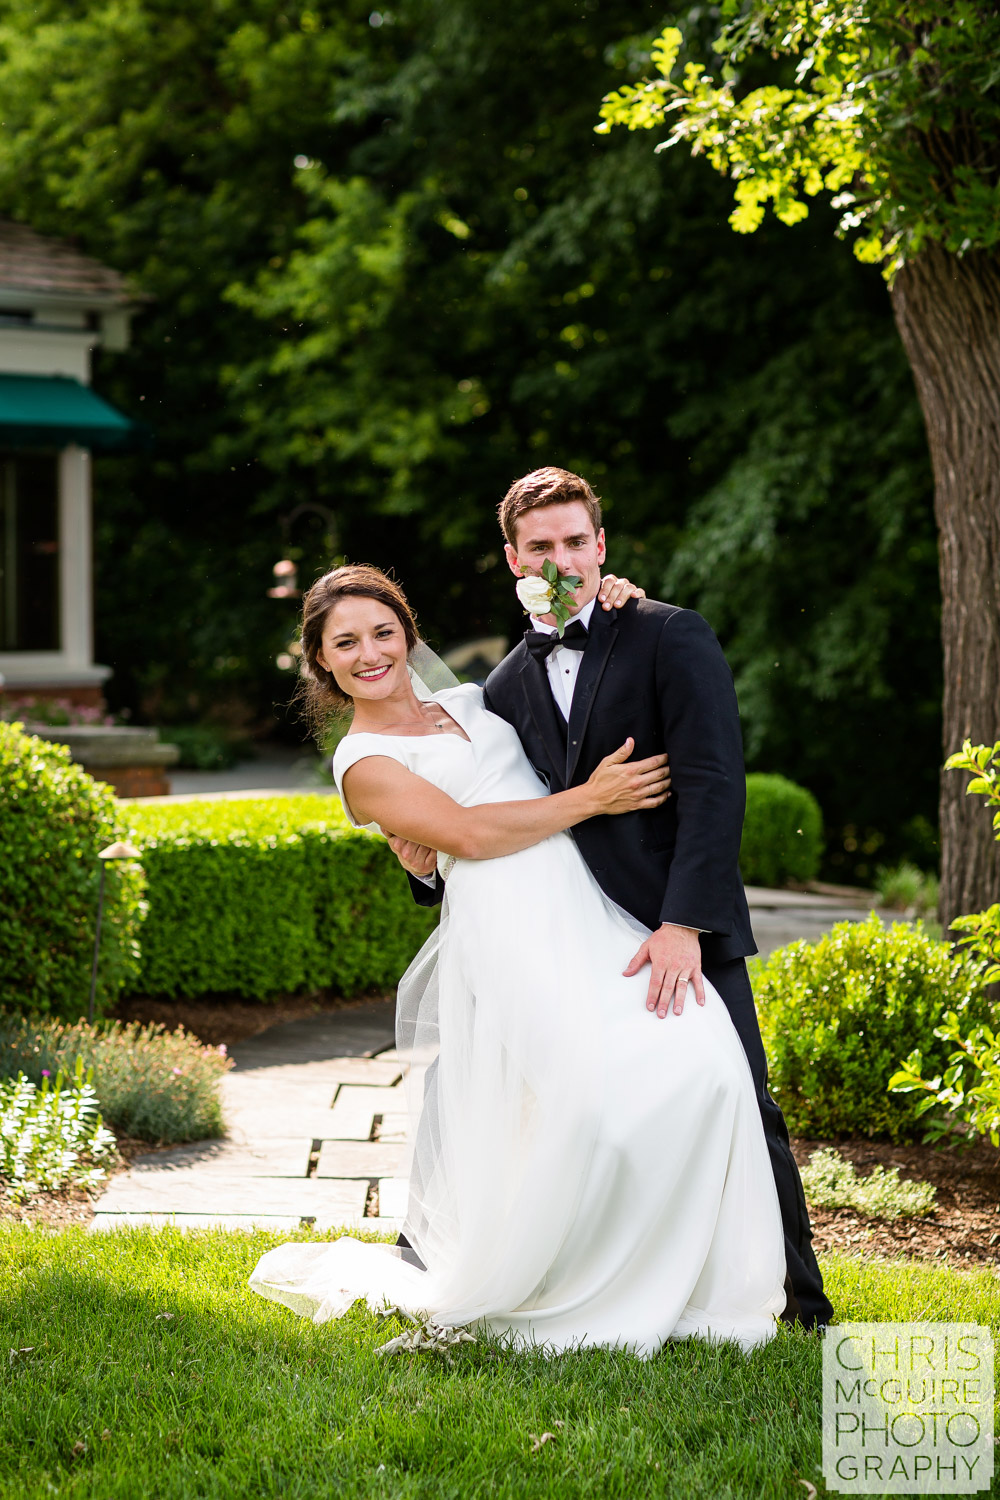 fun bride and groom portrait midwest